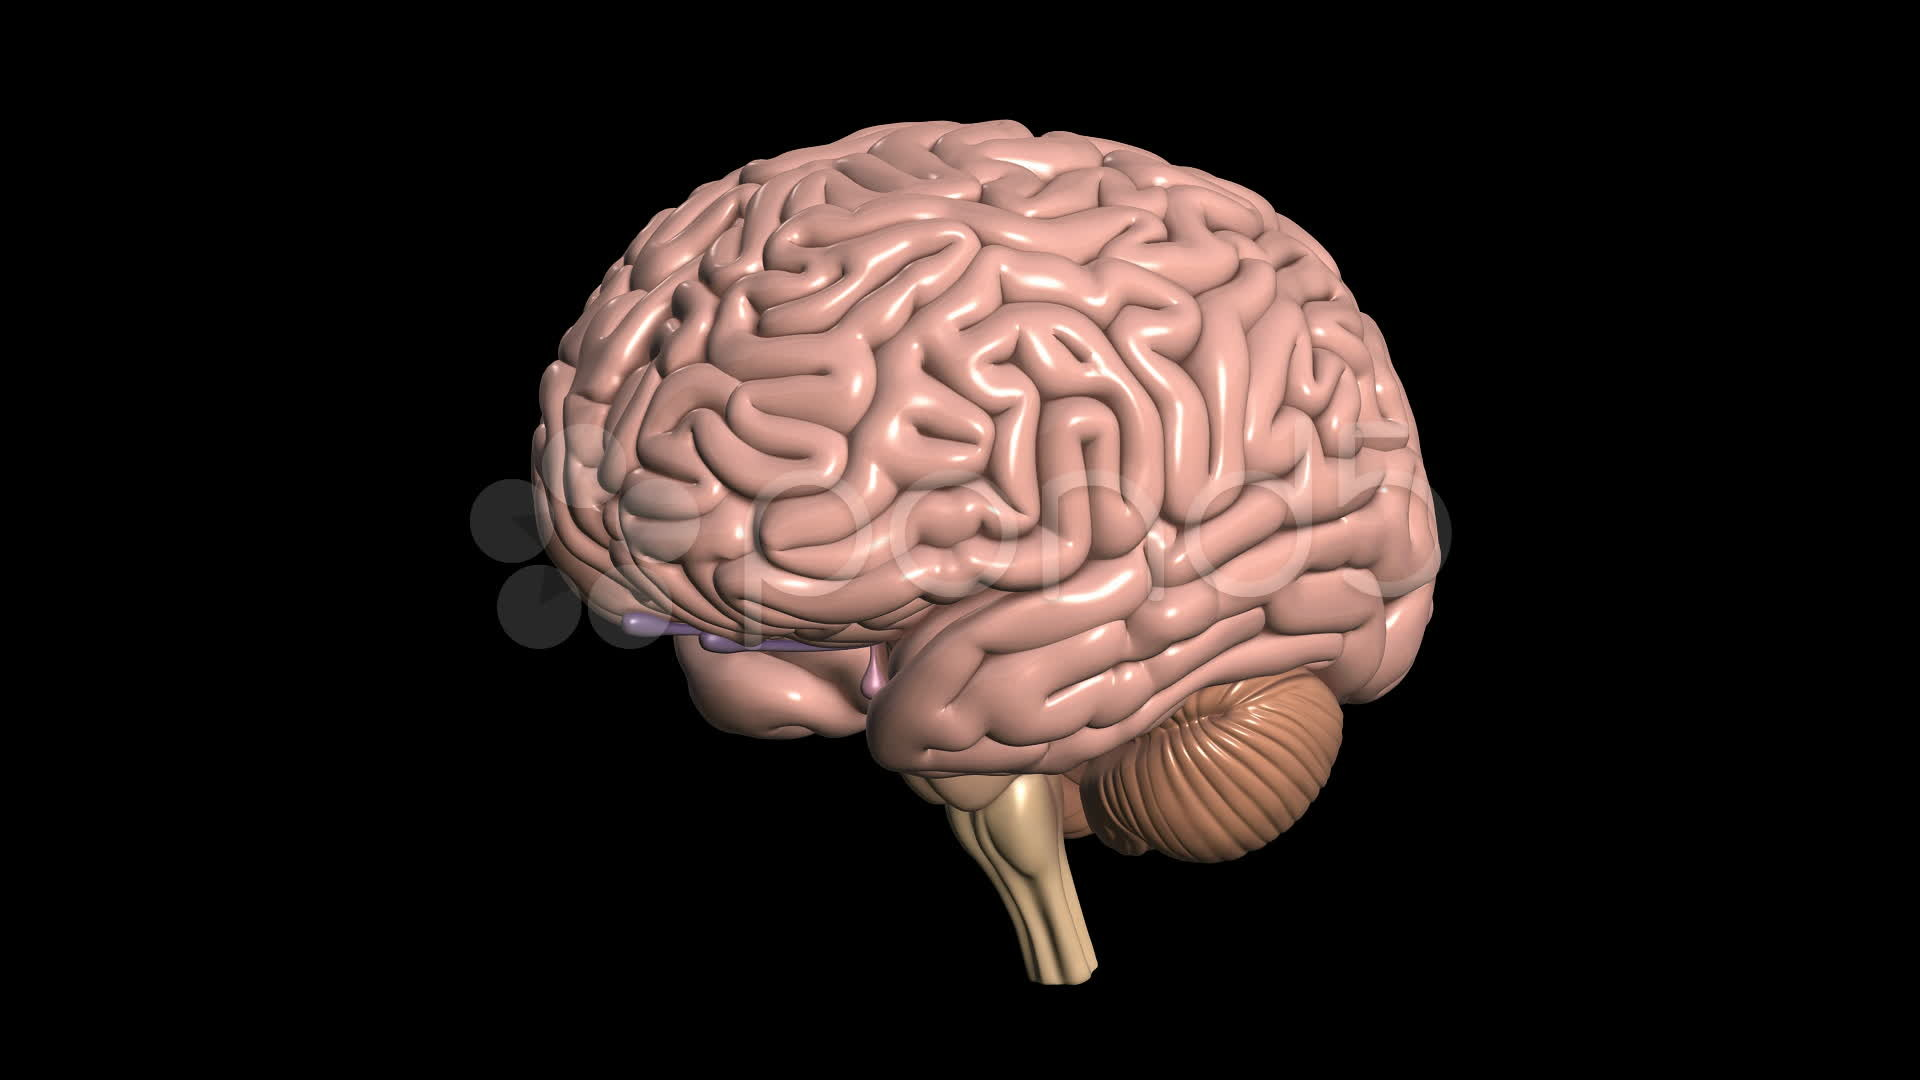 Brain wallpaper hd 67 images - Brain wallpaper 3d ...